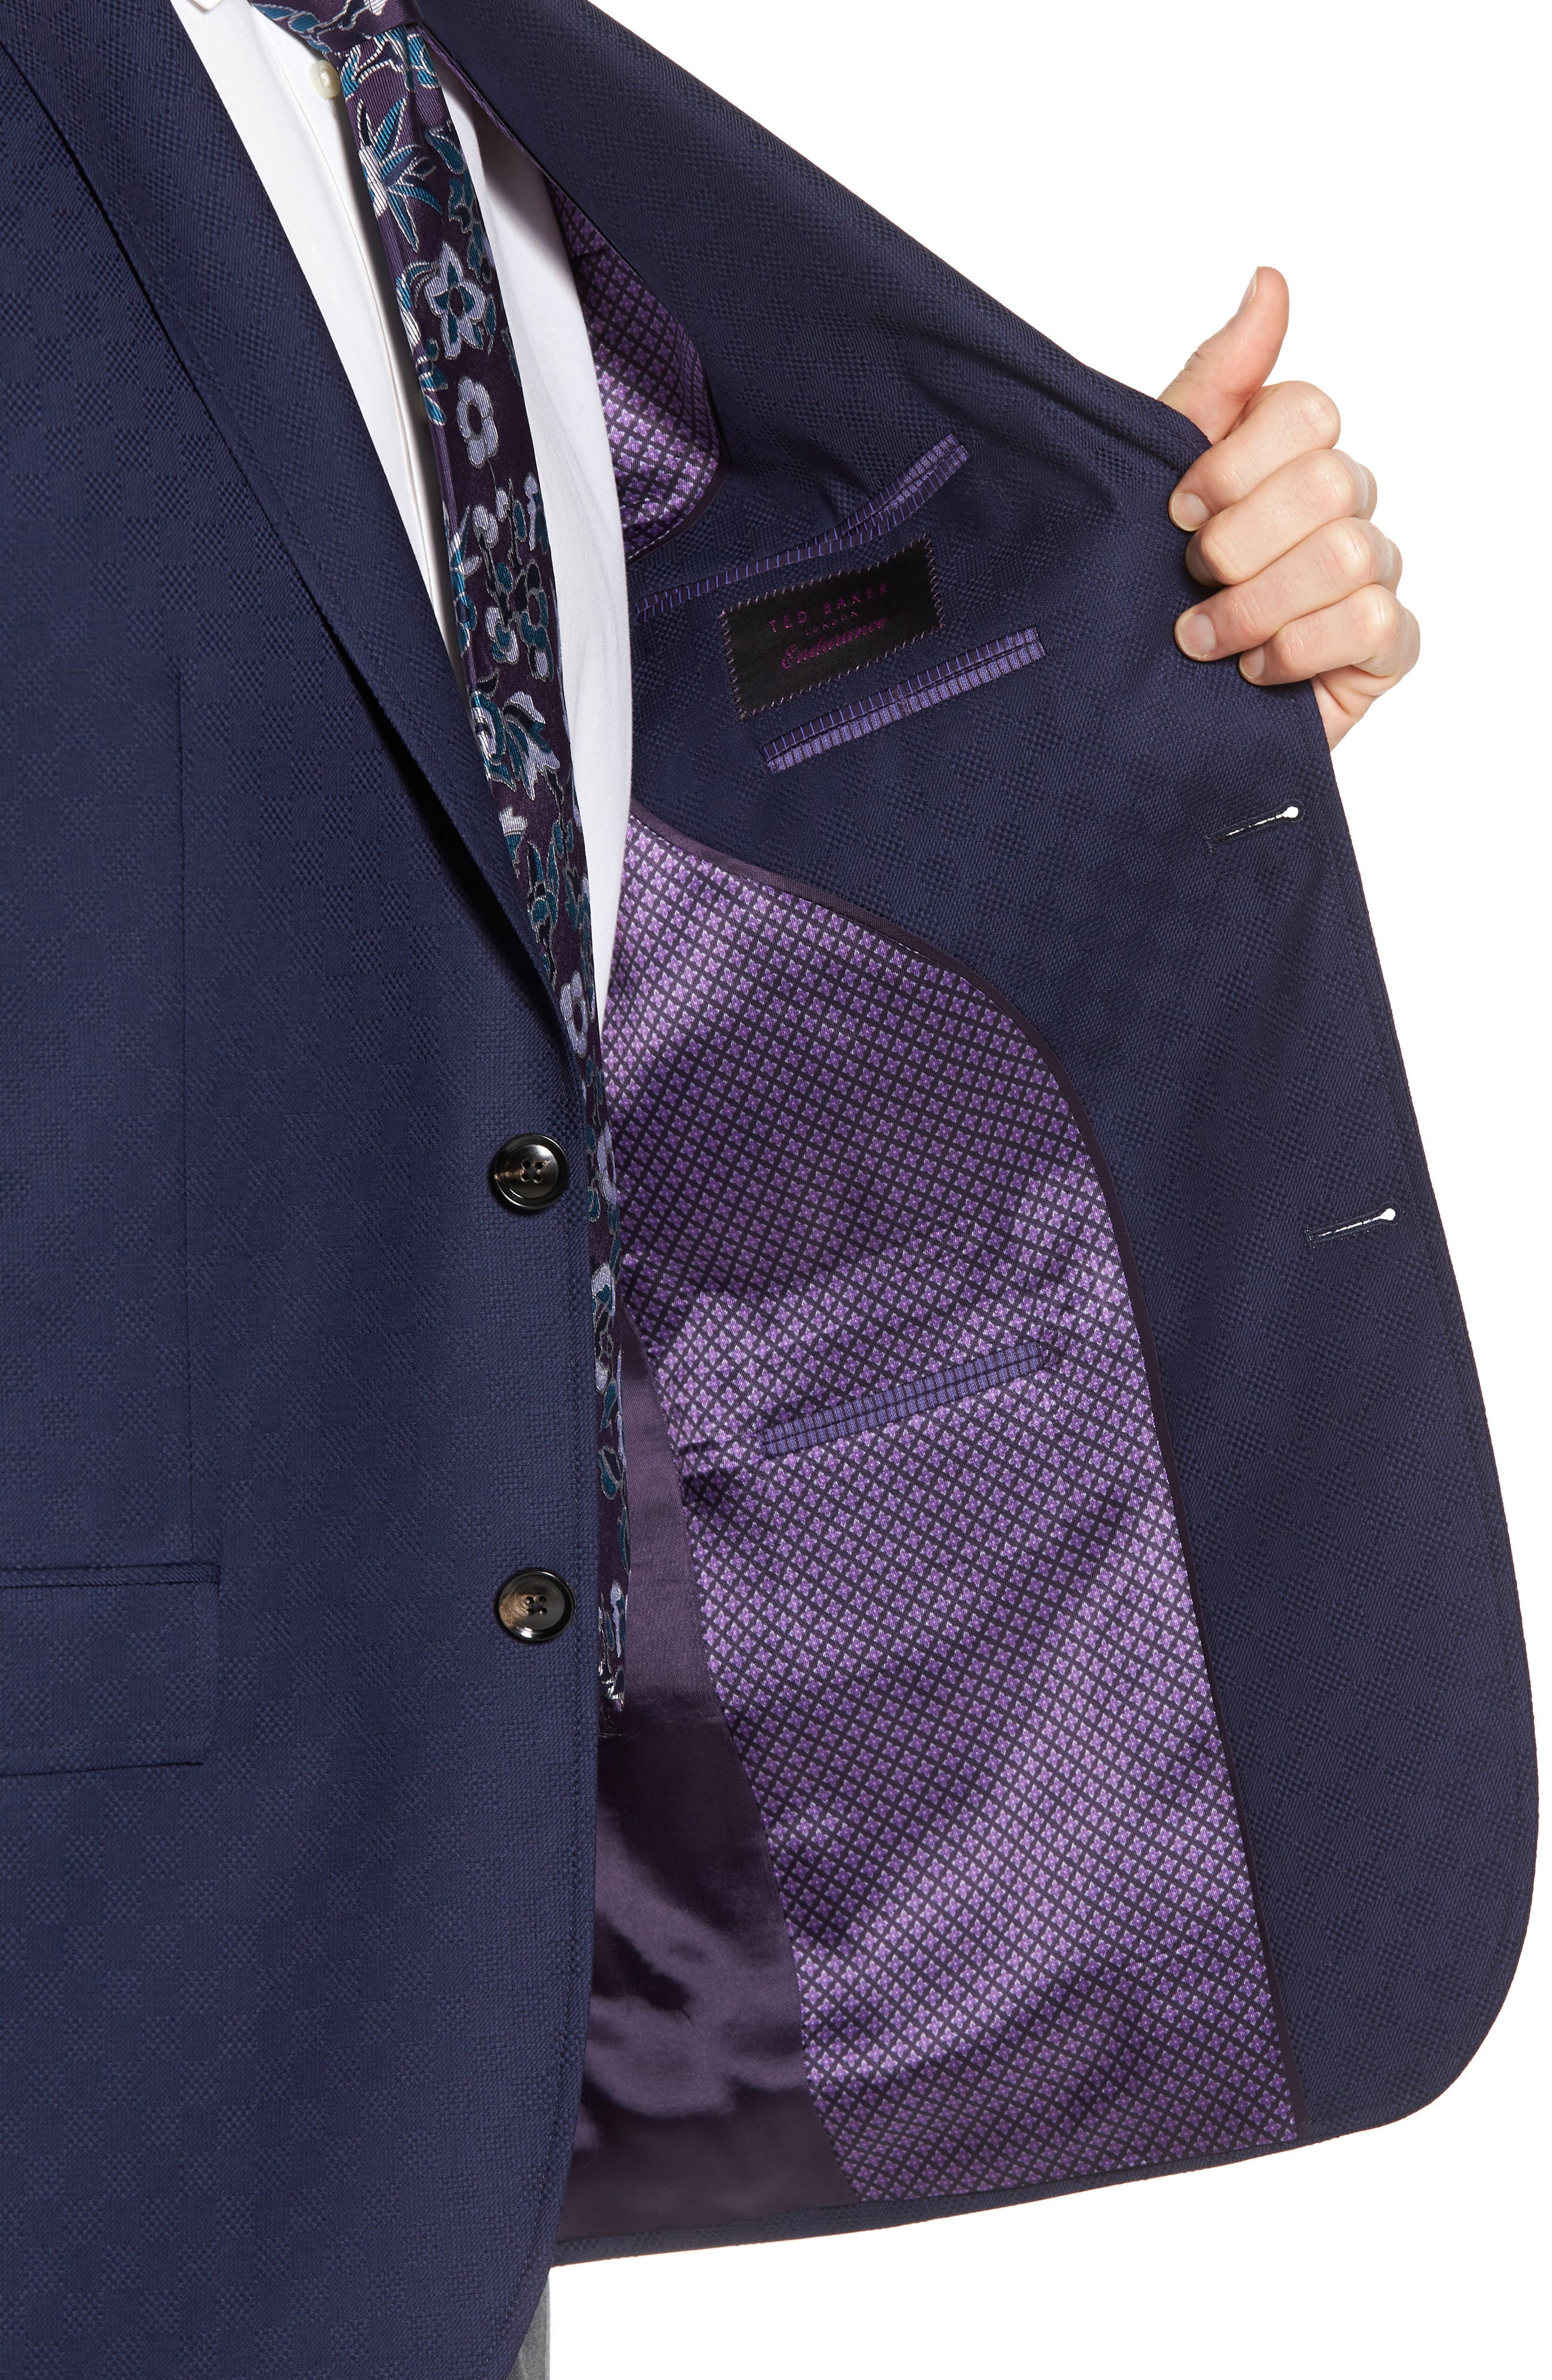 Jay Trim Fit Check Wool Sport Coat,                             Alternate thumbnail 4, color,                             Navy